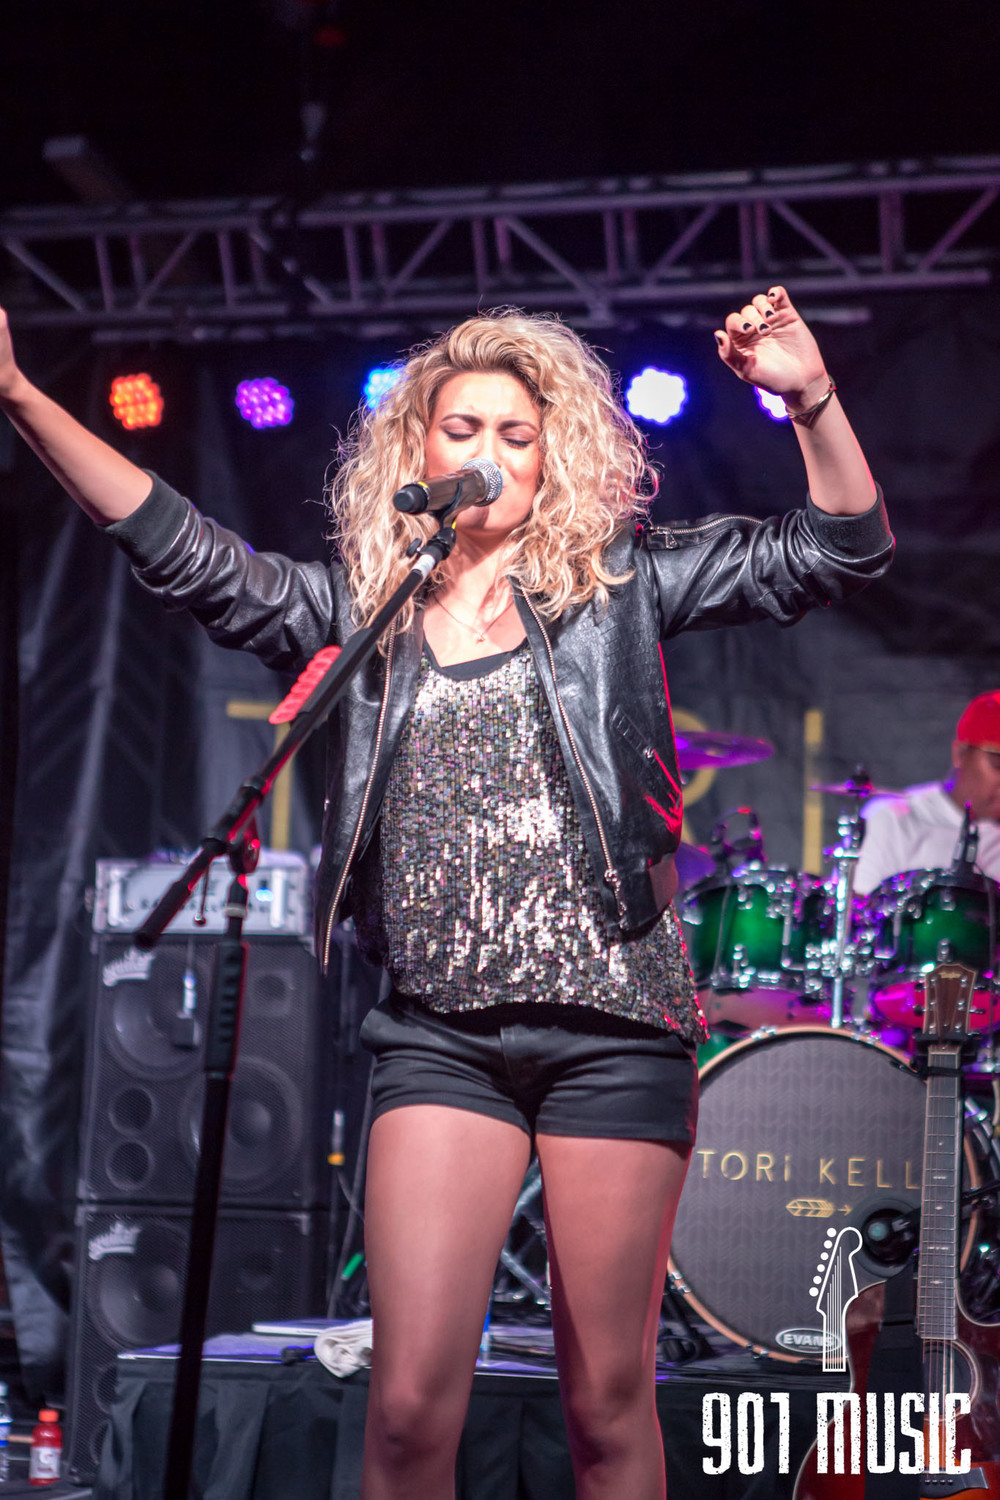 na-0616-ToriKelly-24.jpg